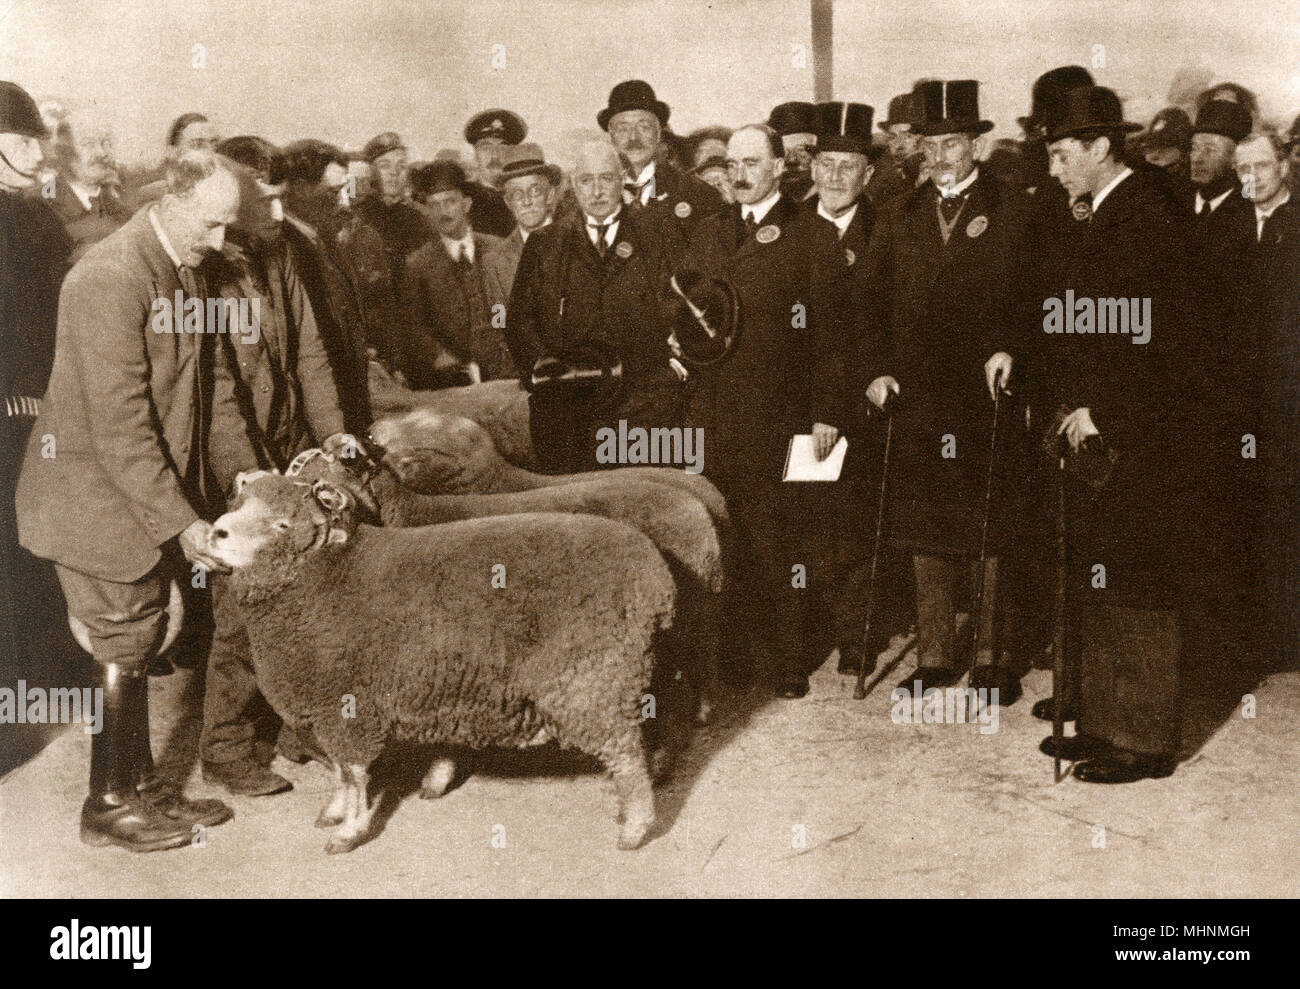 Duke of York at Smithfield Club Fat Stock Show held at the Agricultural Hall Islington in December 1927. His Father (King George V) and his brother (Edward, Prince of Wales) were both exhibiting at the same show).     Date: 1927 - Stock Image